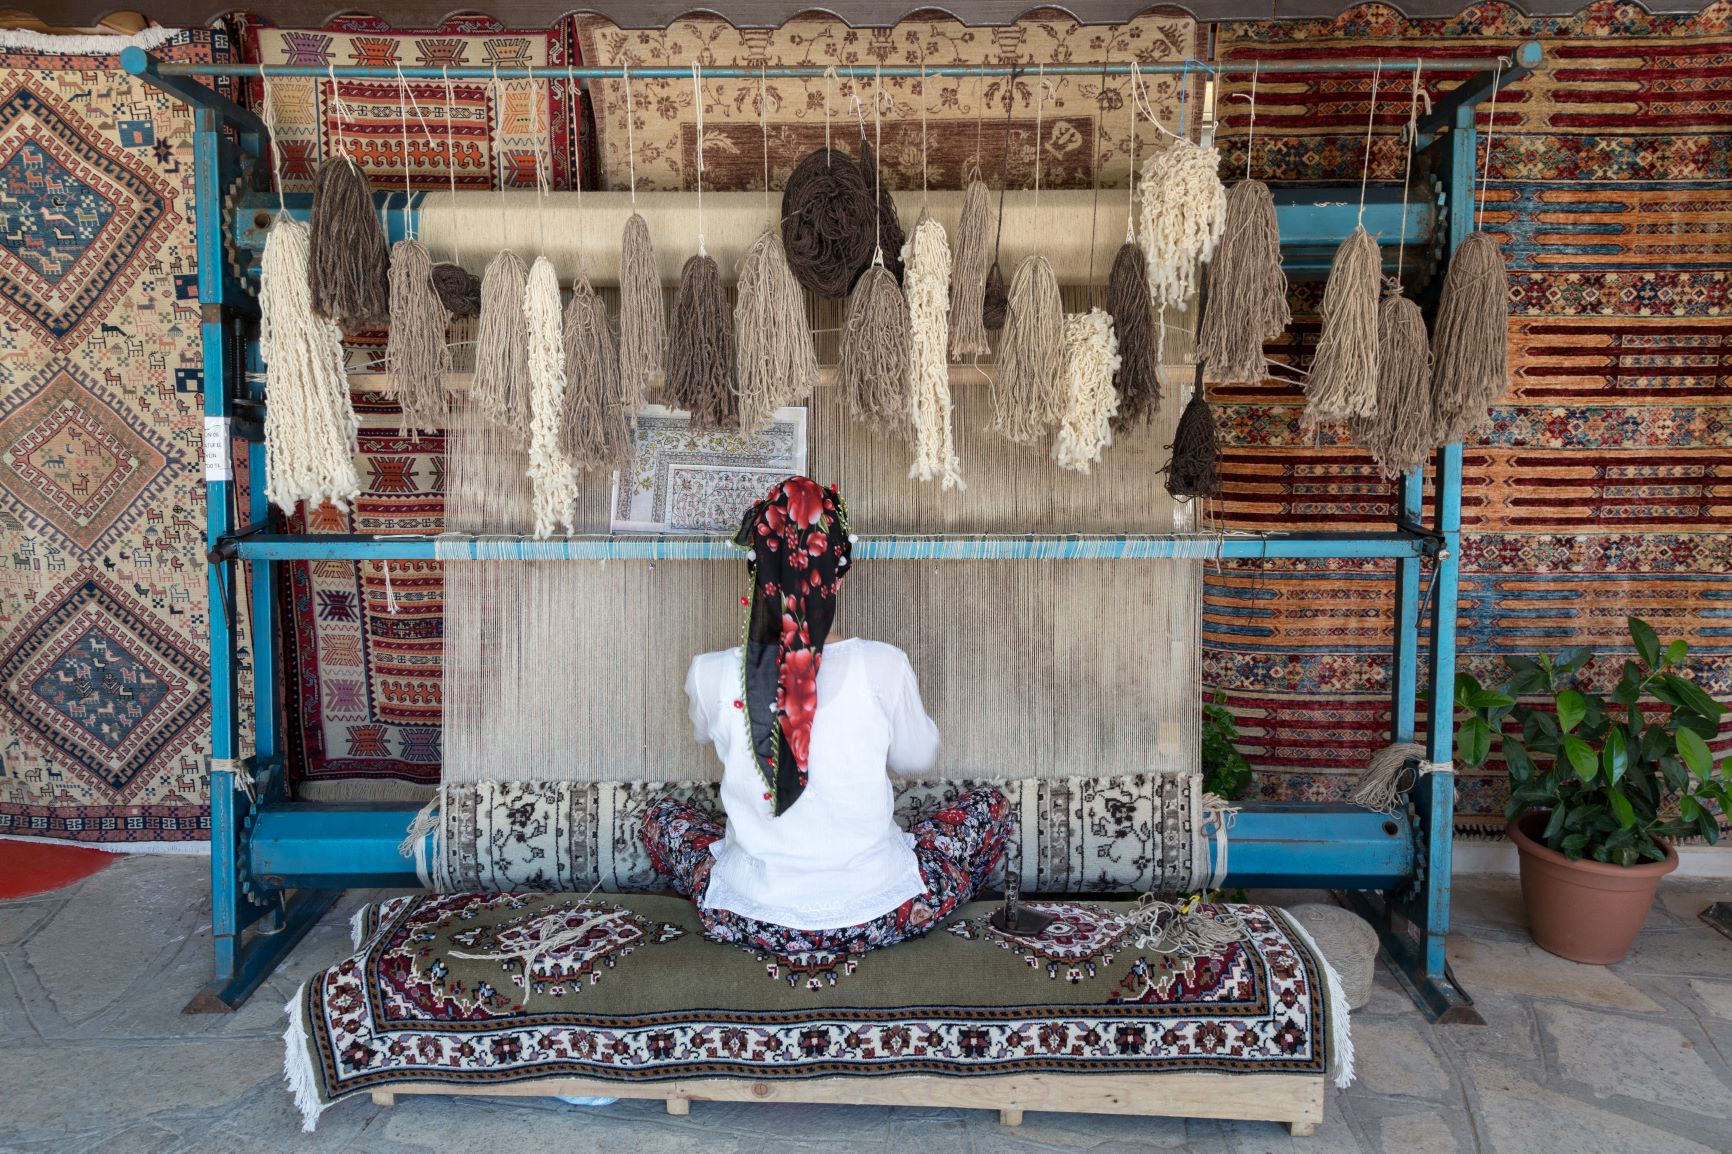 Rug weaver in Turkey